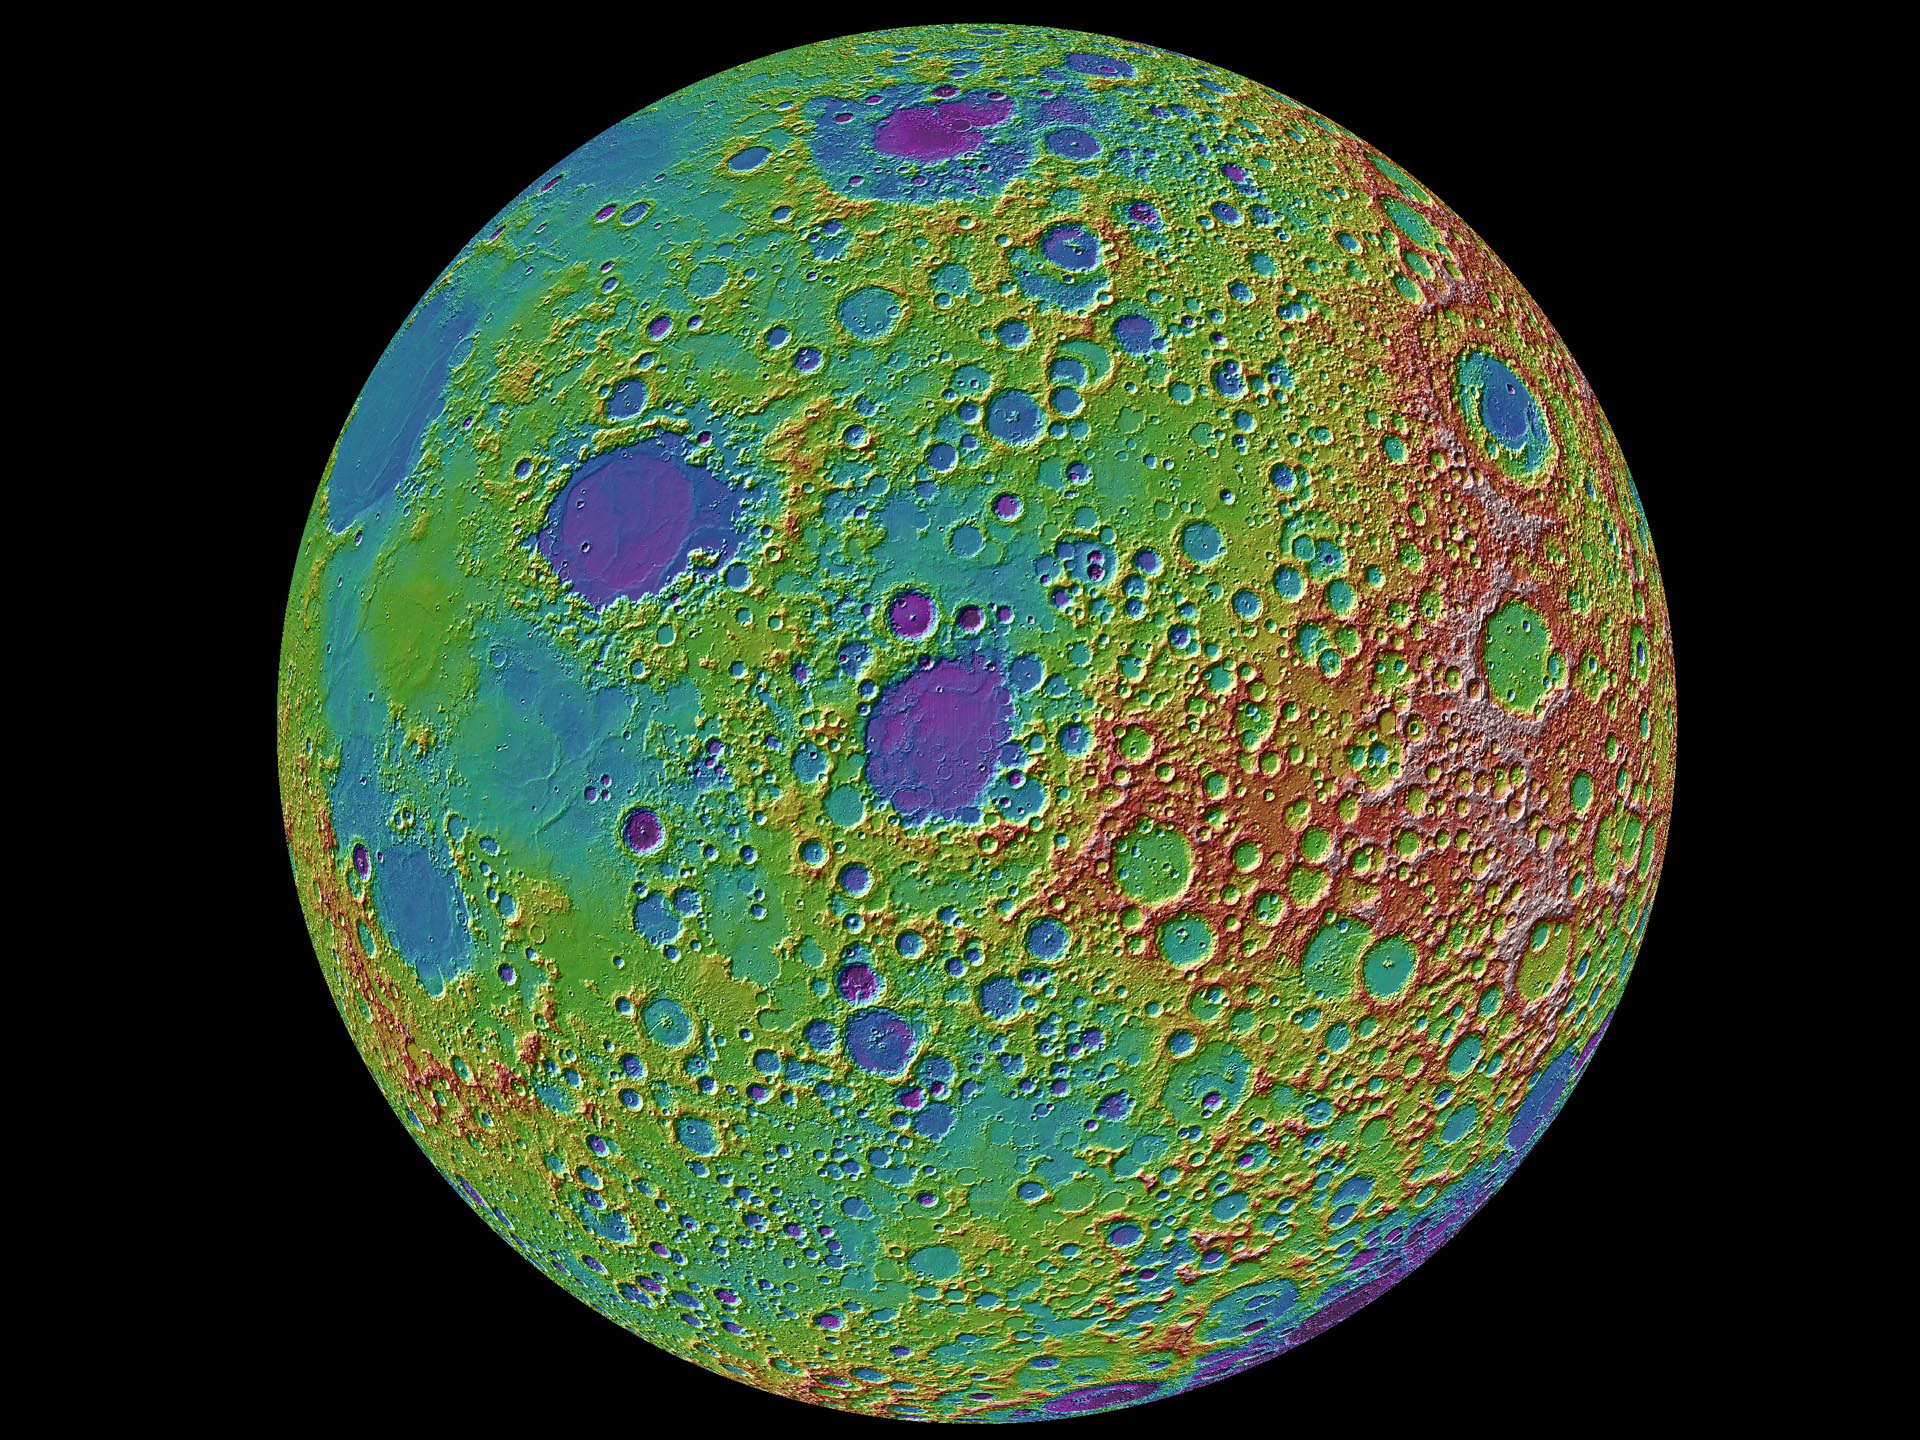 Moon's S-shaped orbit around earth is shaped